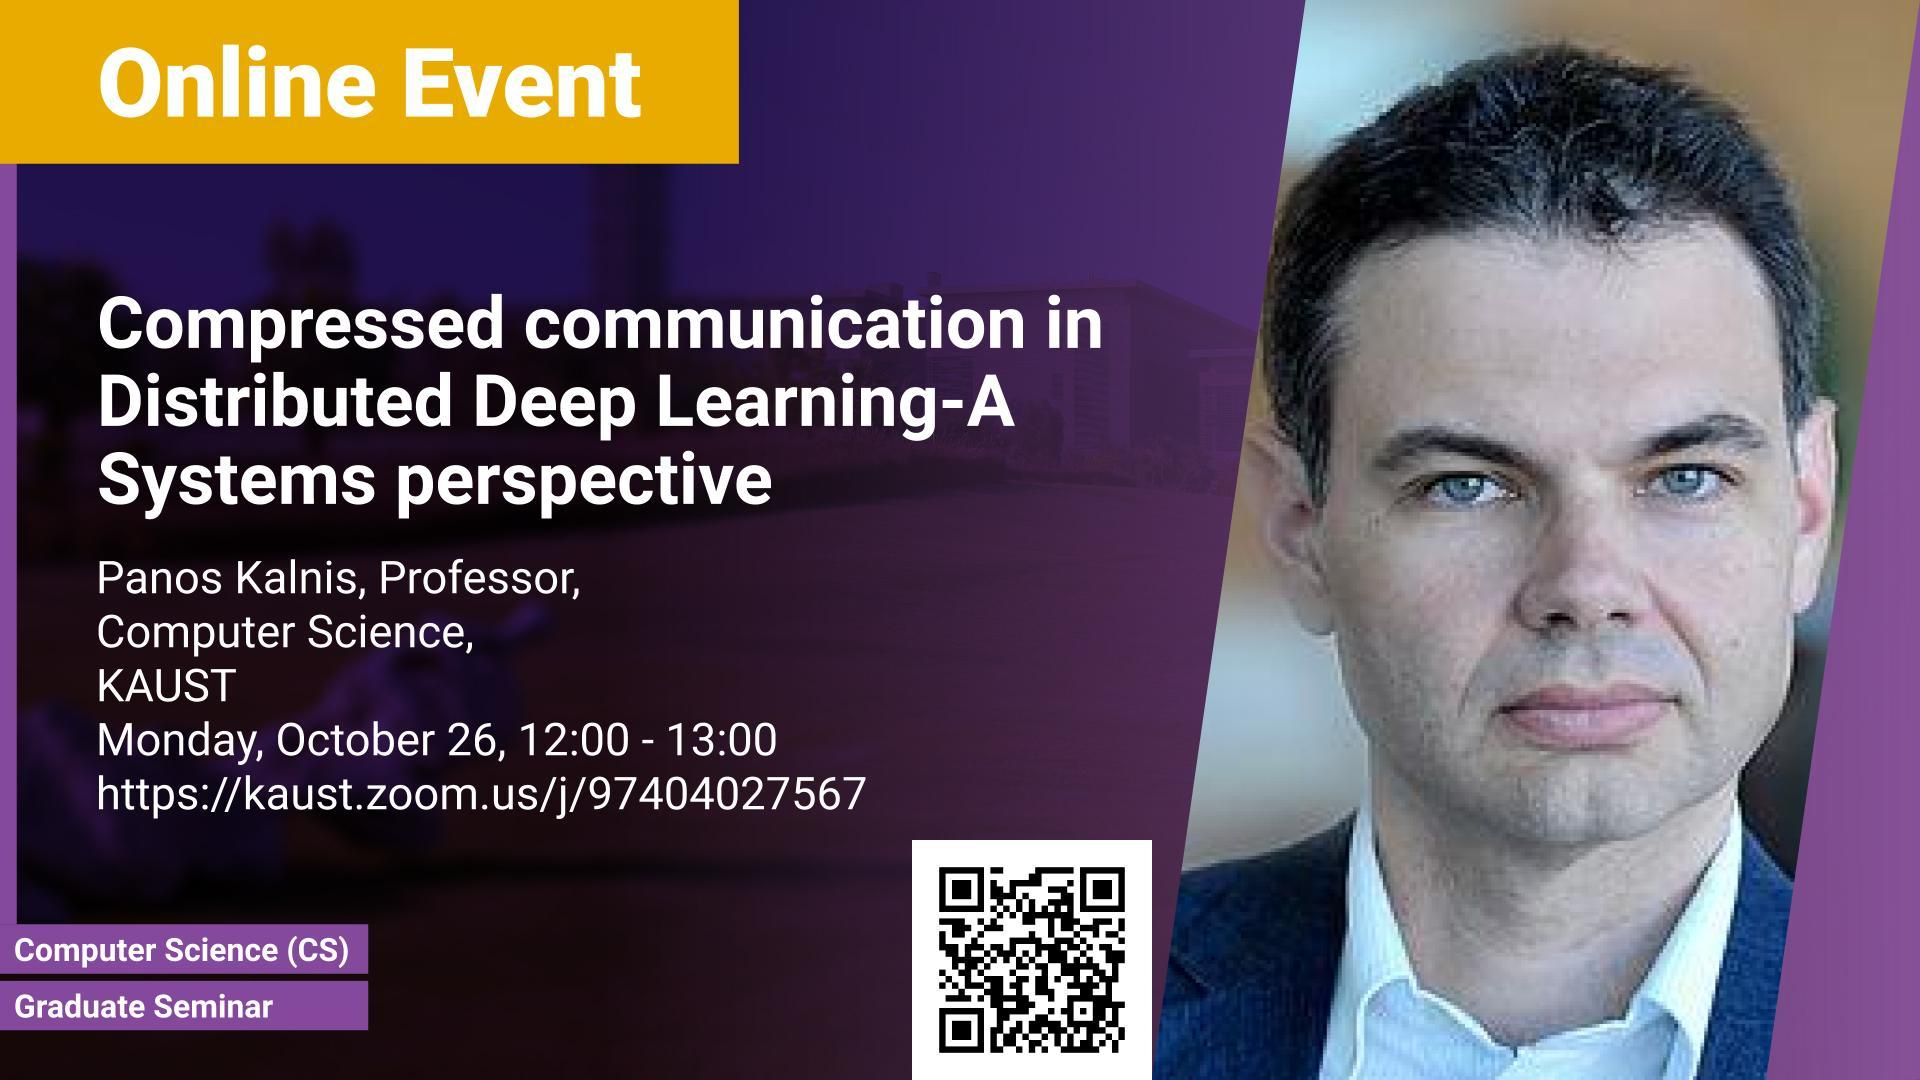 KAUST CEMSE CS Graduate Seminar Panos Kalnis Compressed communication in Distributed Deep Learning A Systems perspective